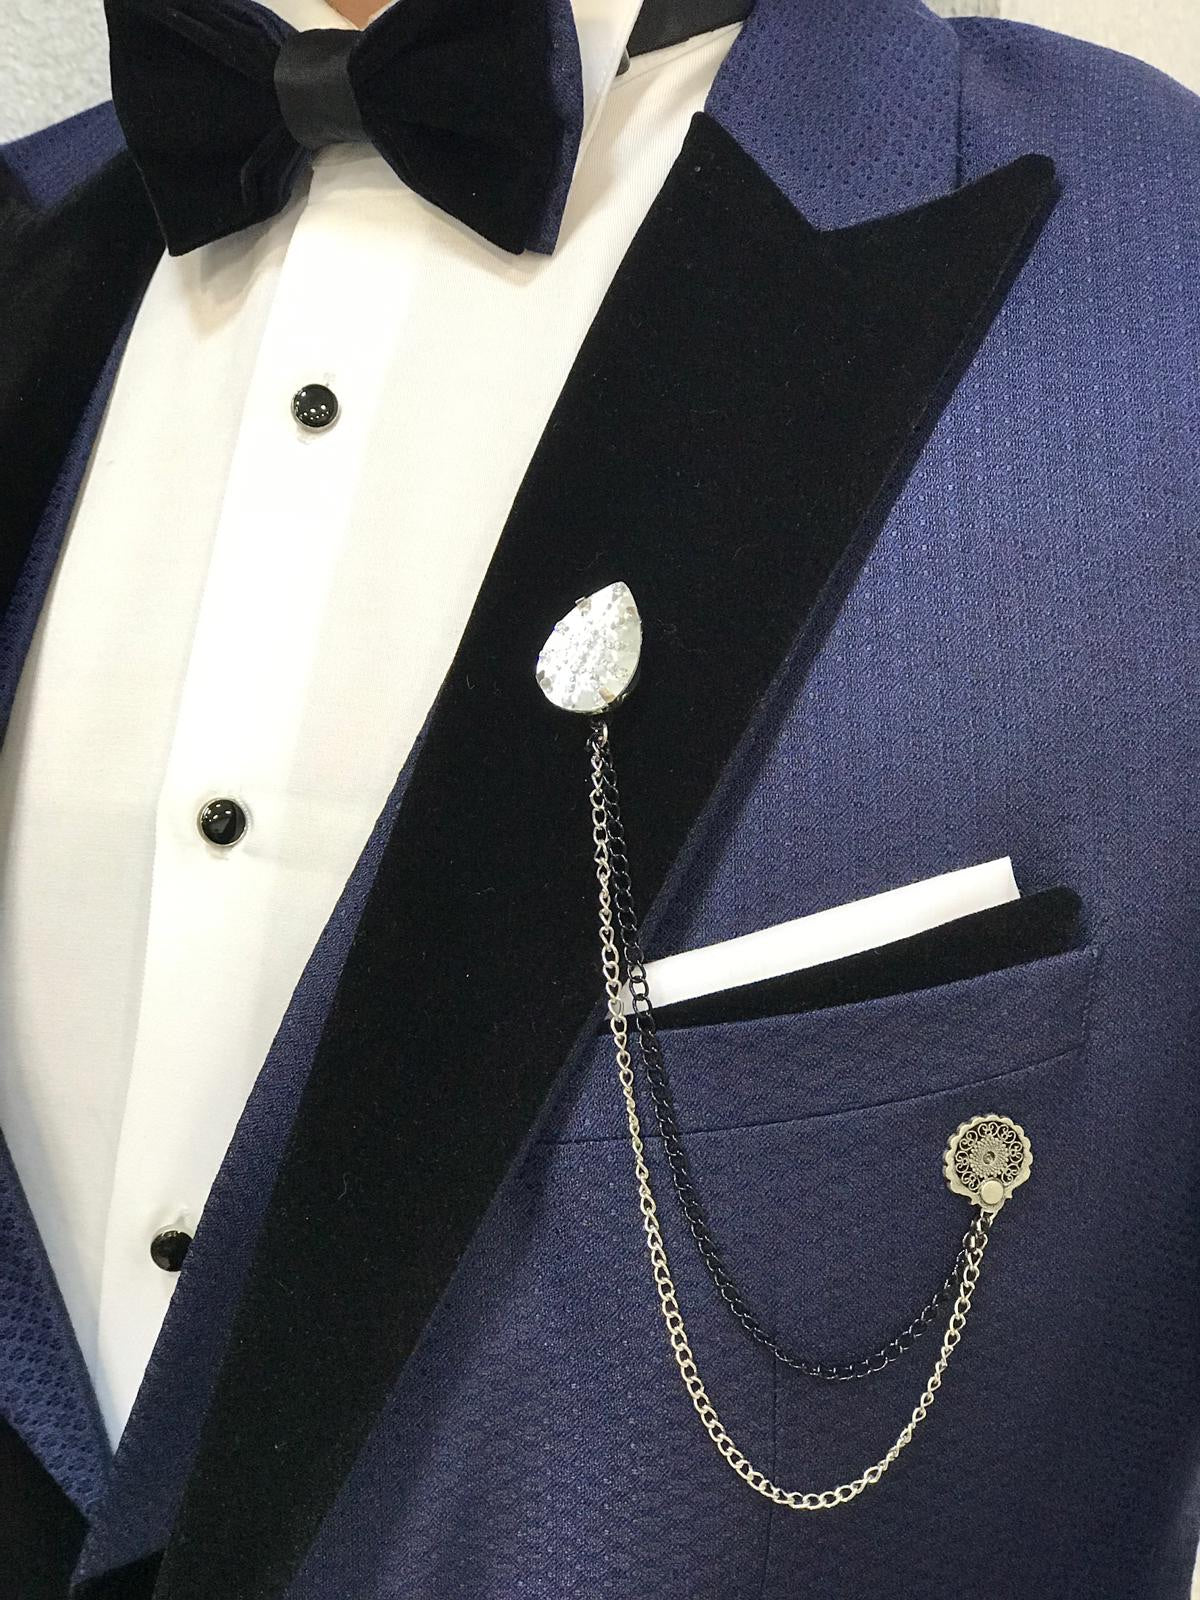 Acacia Navy Blue Patterned Tuxedo